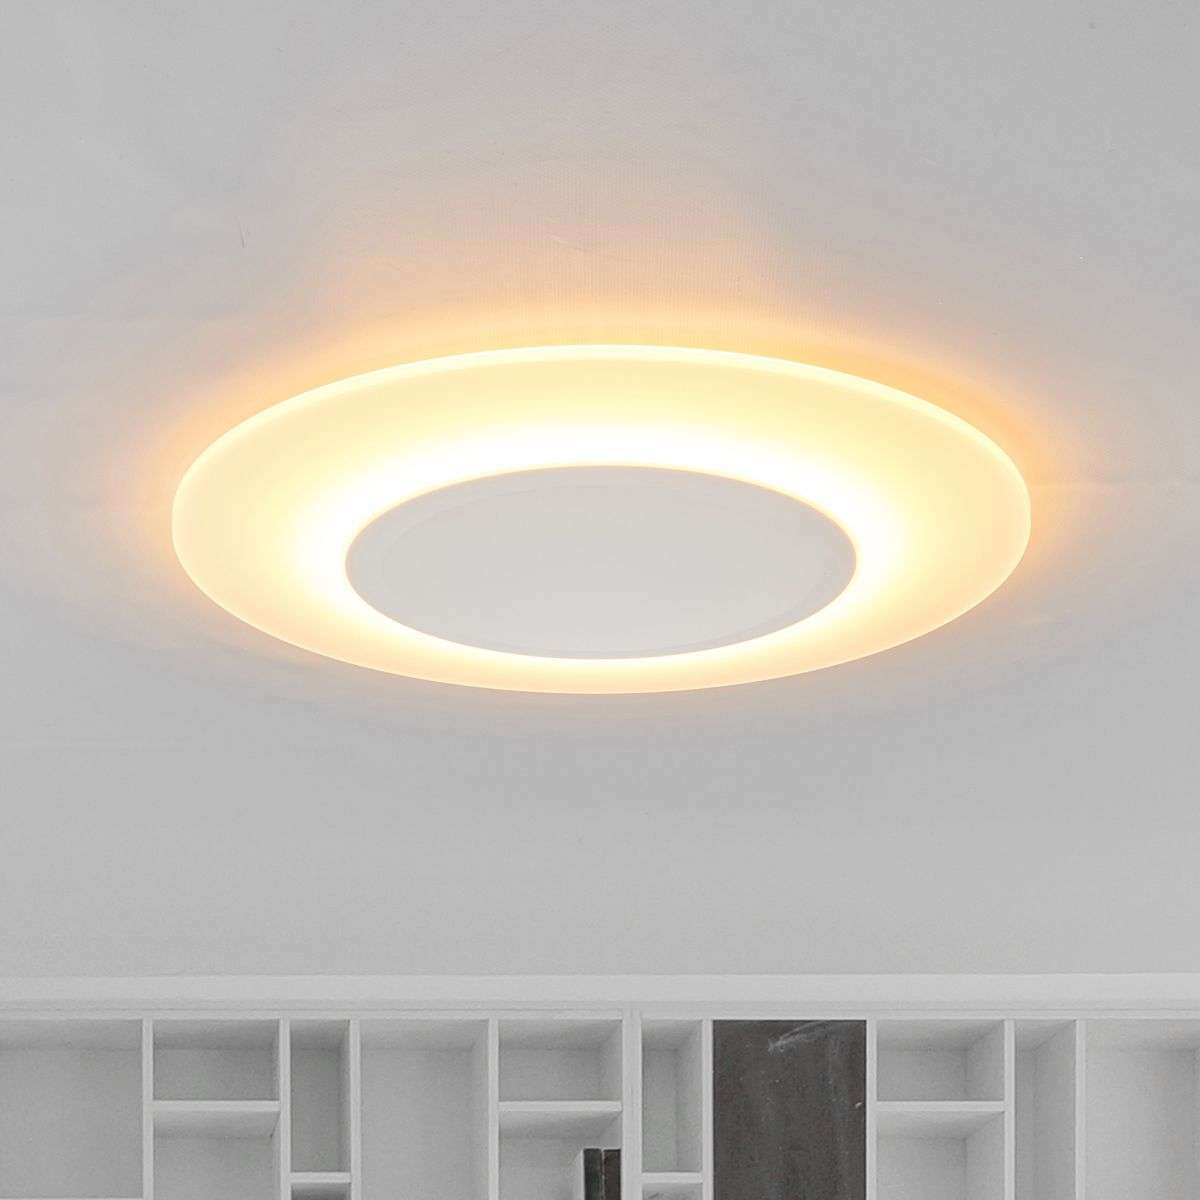 Very flat ceiling light led flat 1 200 lumens for Lights company